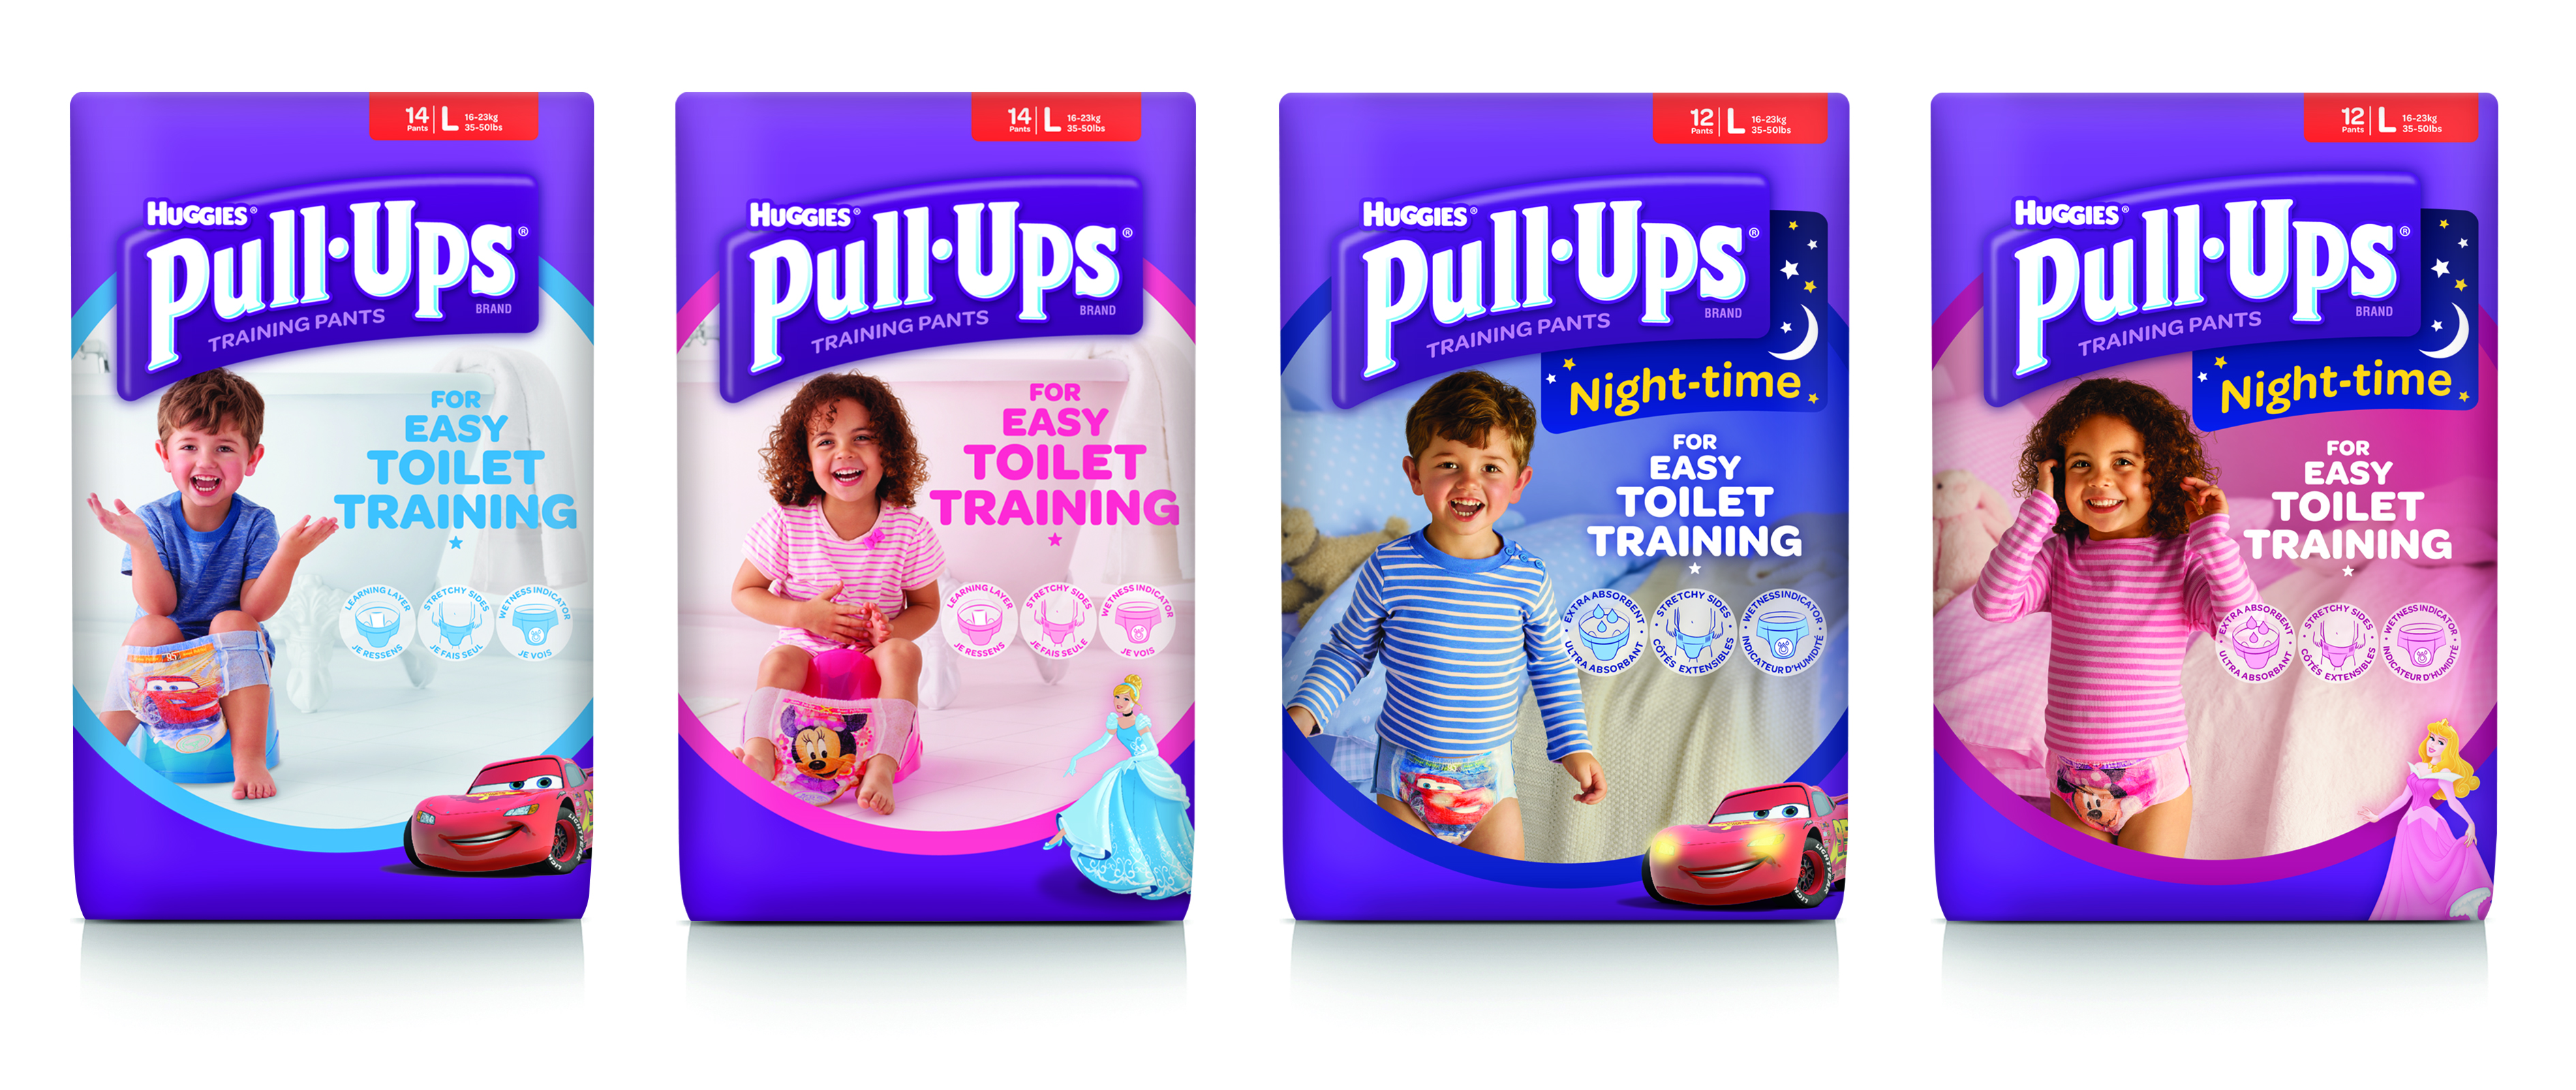 Potty training can be a real struggle! Fancy lots of potty training tips that really work? Written in collaboration with HUGGIES® Pull-Ups® #ad